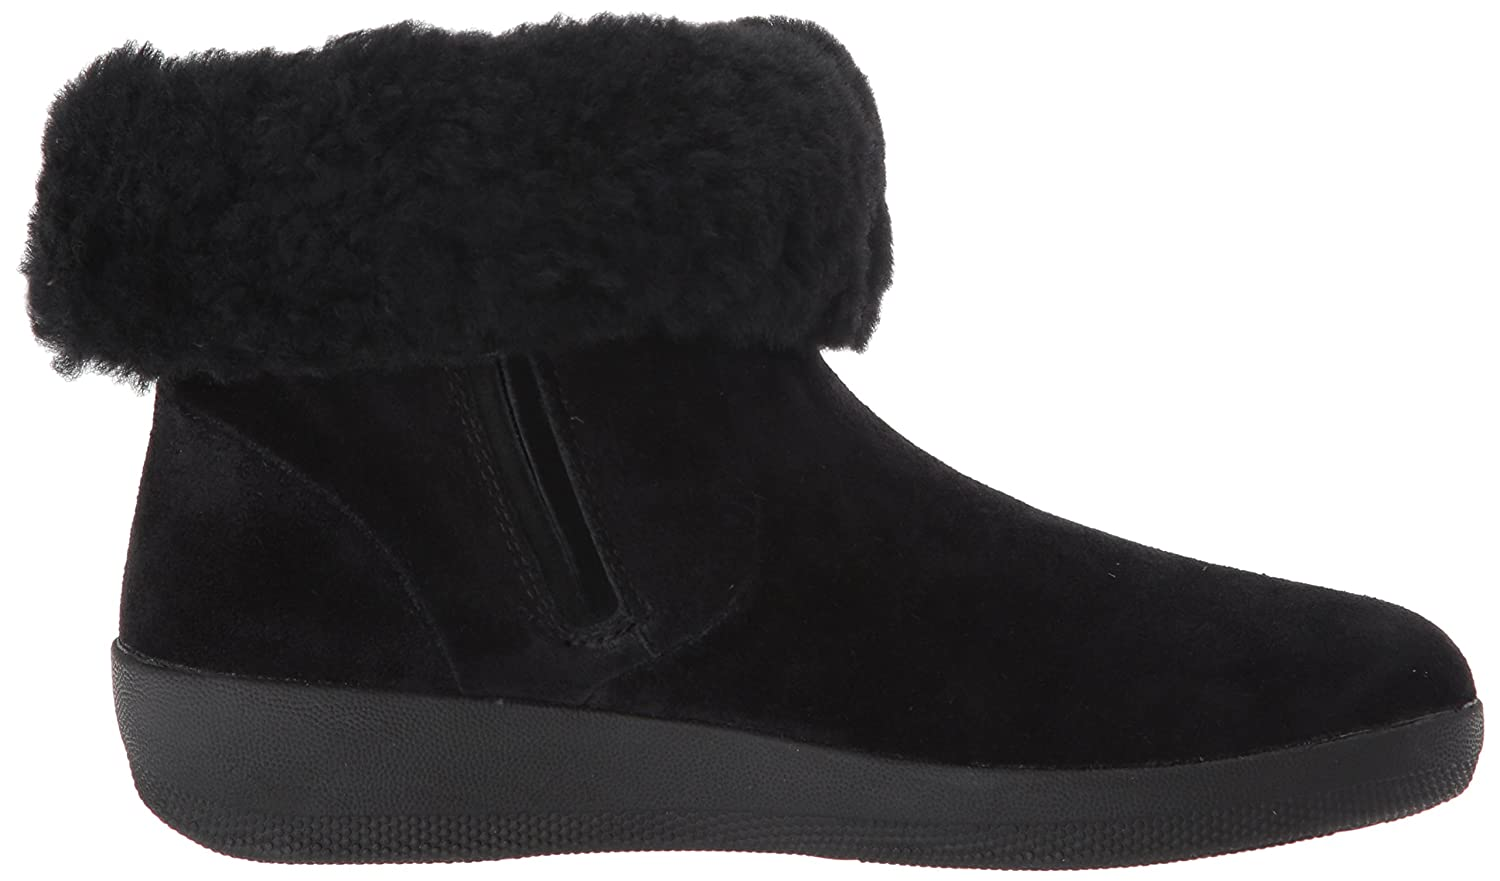 387ea21b1 ... FitFlop Women s Skatebootie Suede Shearling Ankle Boot B06XGKQSD7 7.5  B(M) B(M ...